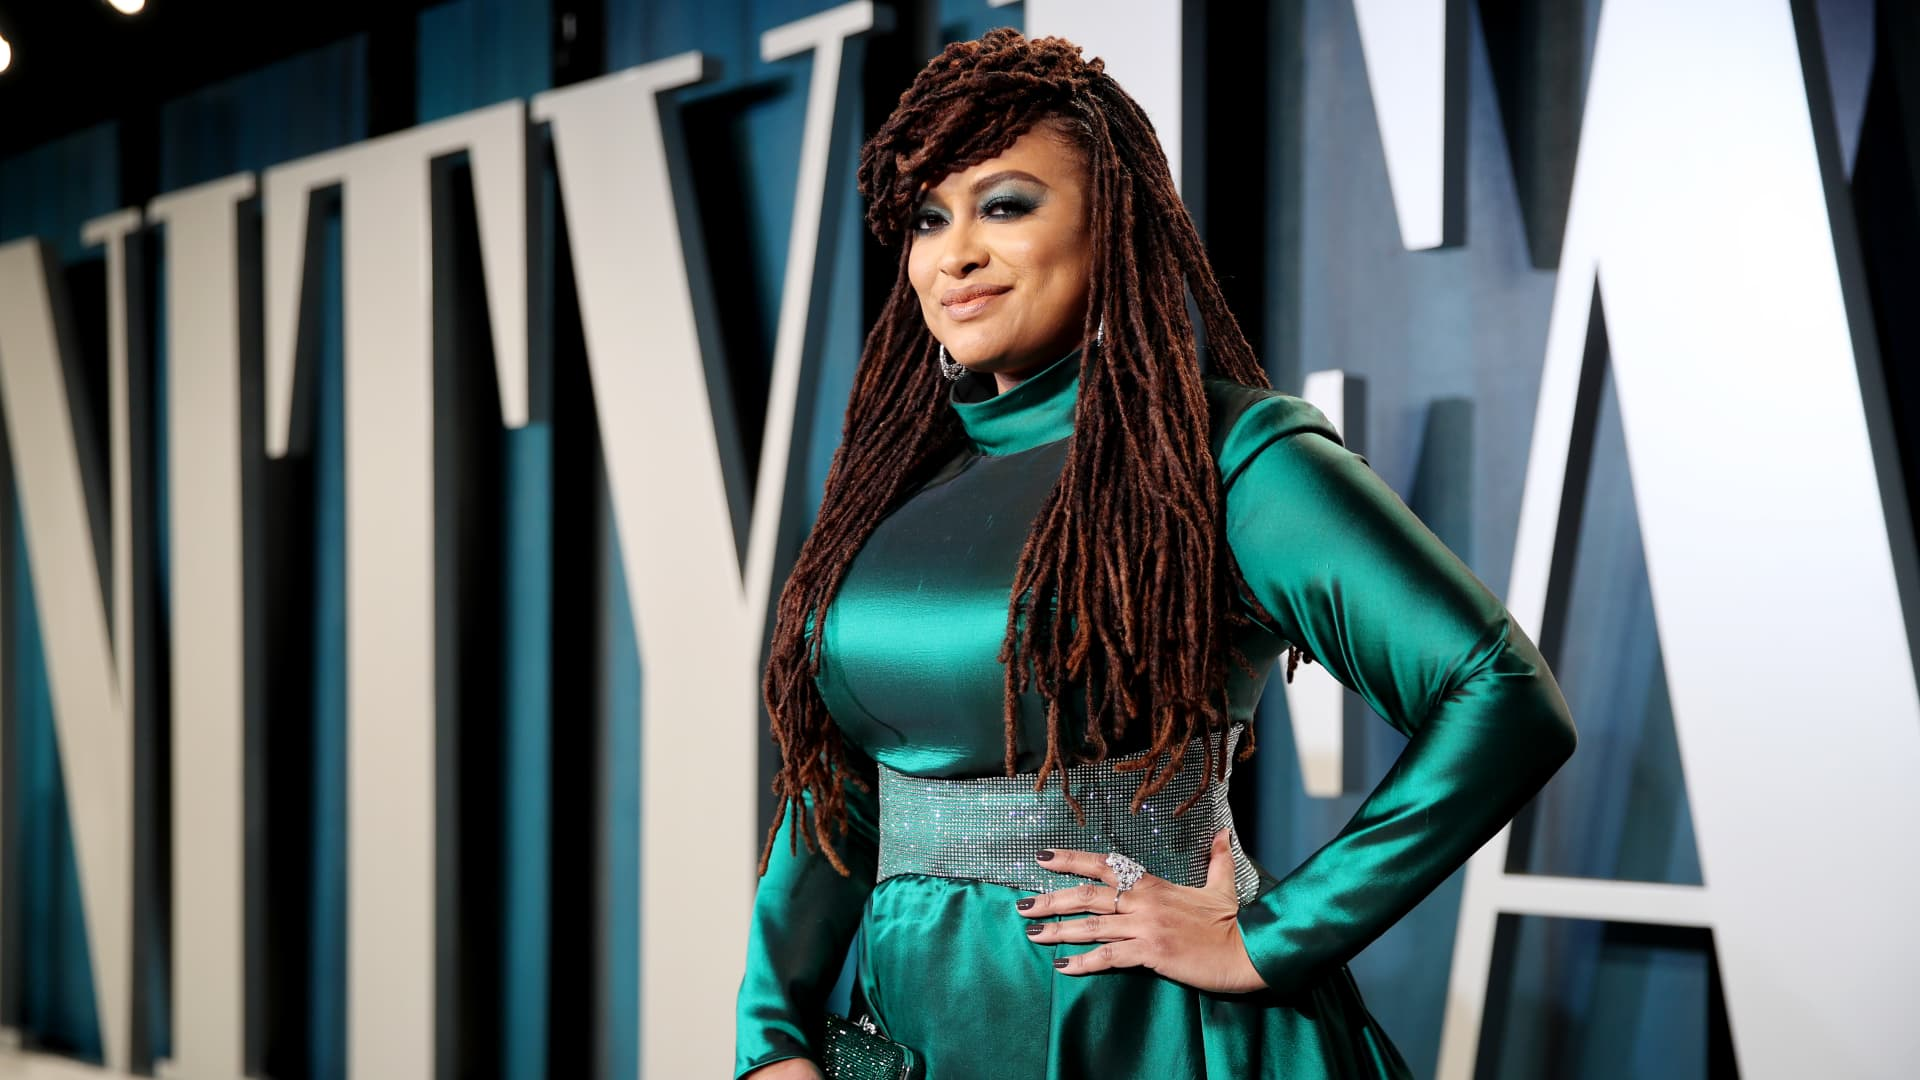 Ava DuVernay attends the 2020 Vanity Fair Oscar Party hosted by Radhika Jones at Wallis Annenberg Center for the Performing Arts on February 09, 2020 in Beverly Hills, California.